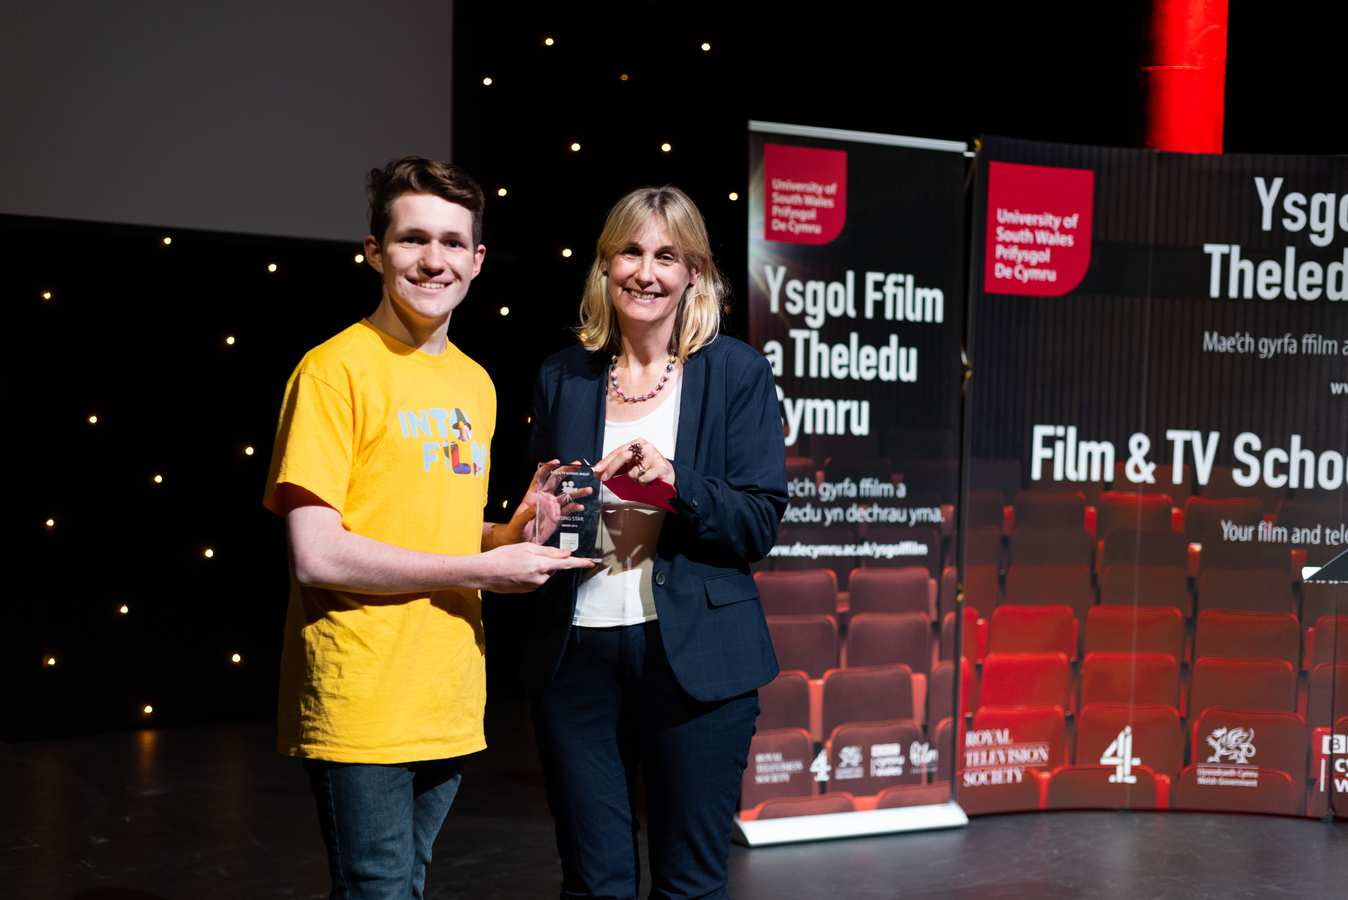 Hedydd Ioan, Rising Star, with Sian Gwynedd, Head of Content Production at BBC Wales. Neil Gibson, July 2019